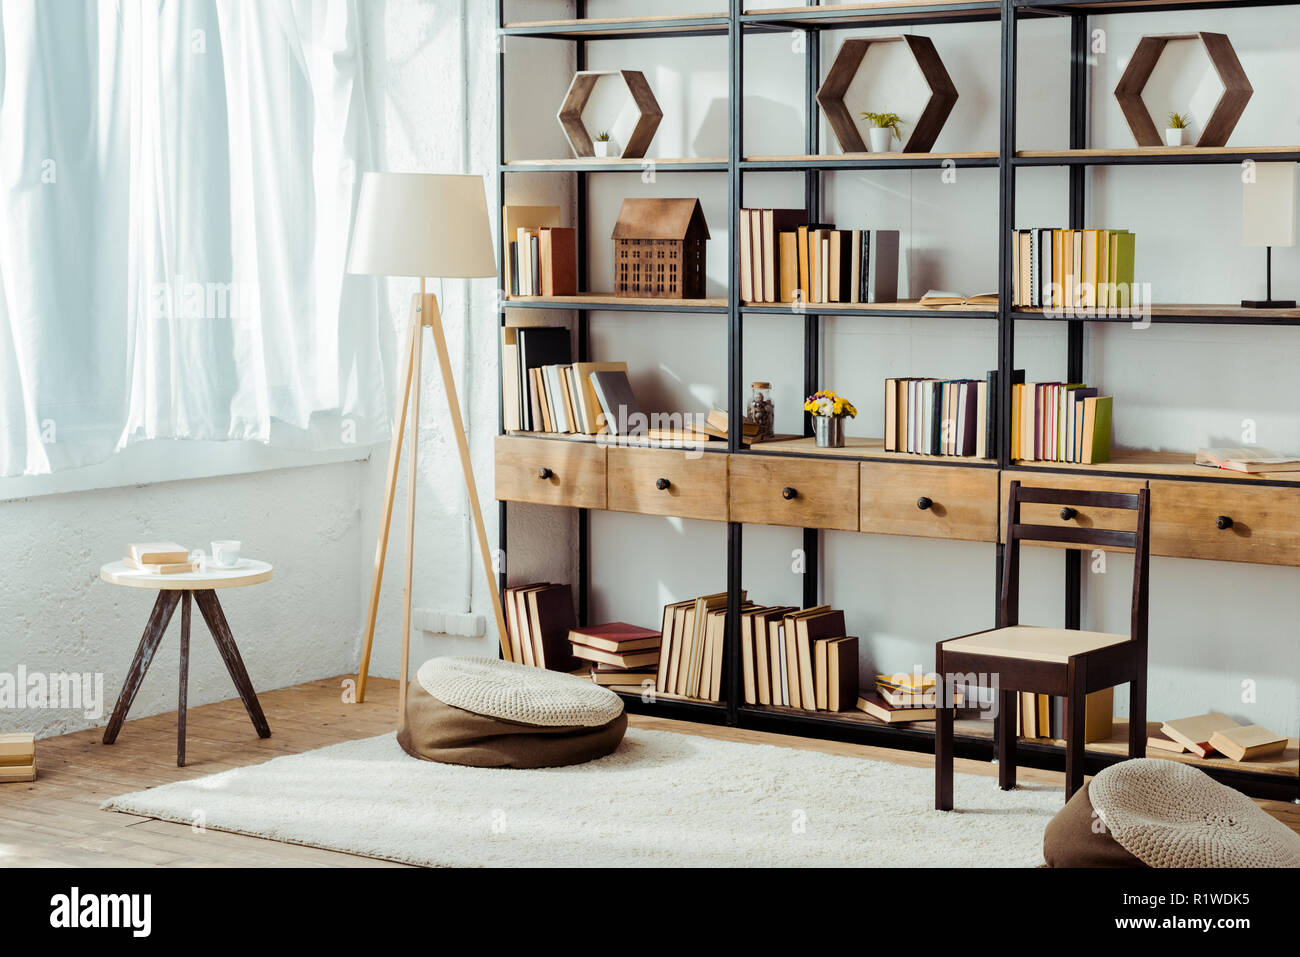 interior of living room with wooden furniture and books - Stock Image